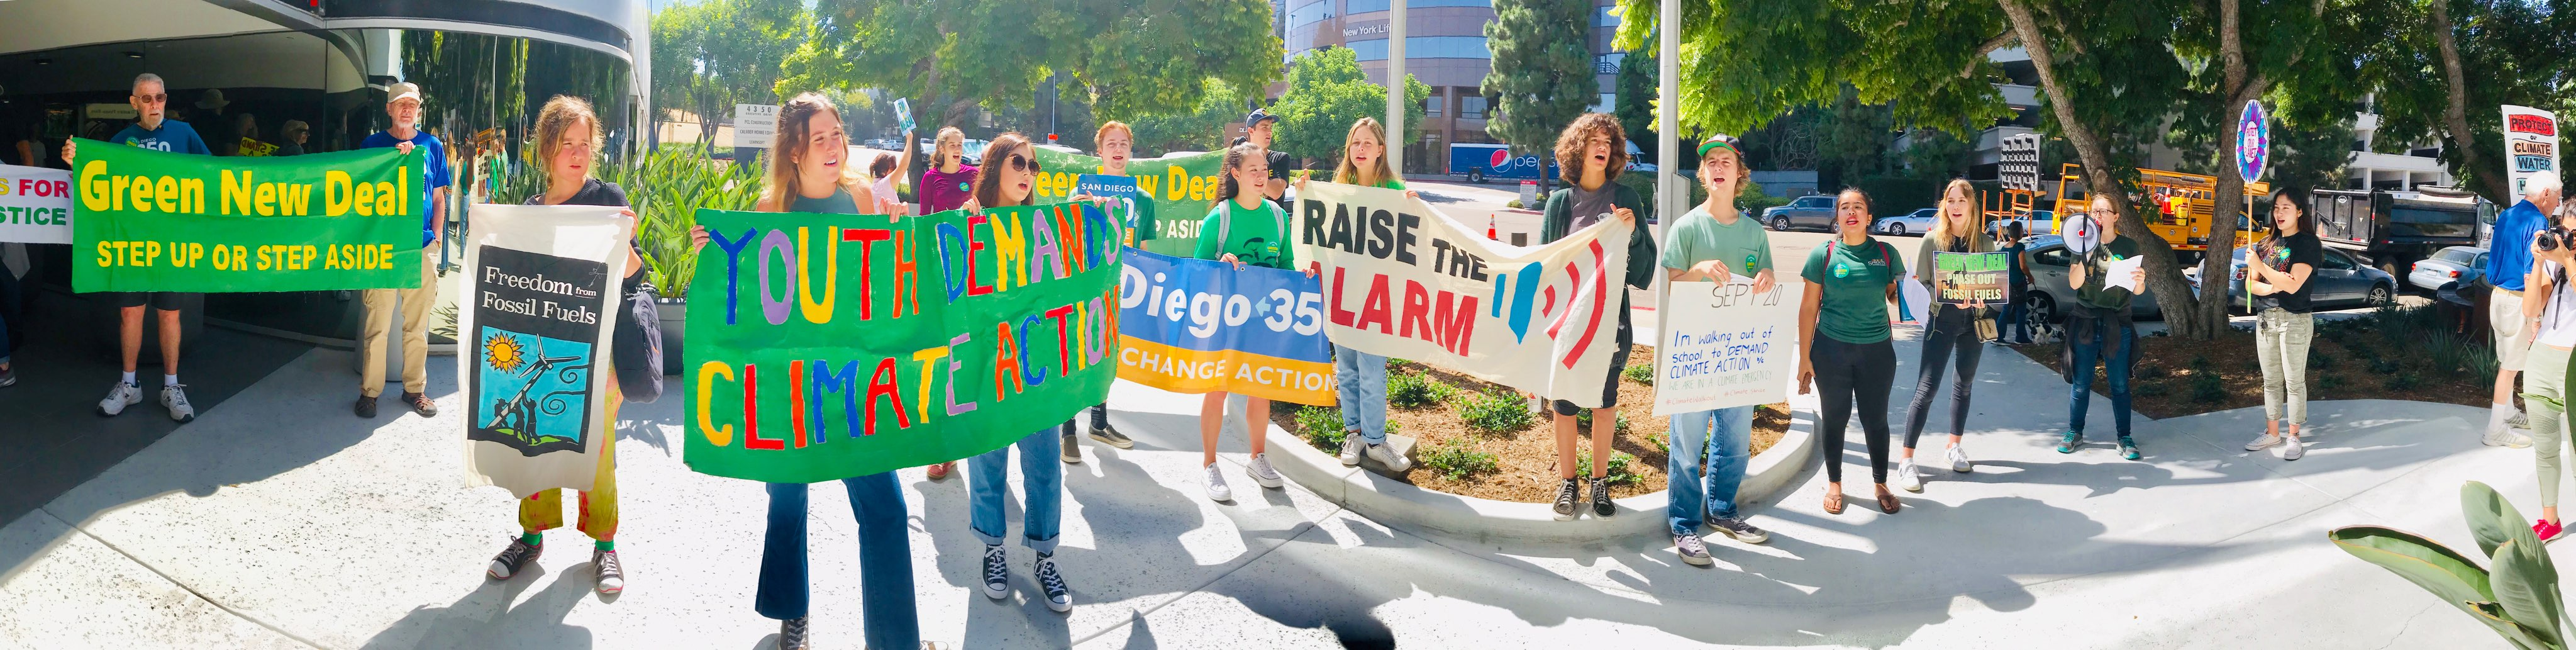 "In Sept. 2019, youth across the country took action to bring attention to the climate crisis. These SanDiego350 youth climate activists planned a ""raise the alarm"" event at Rep. Scott Peters' office."